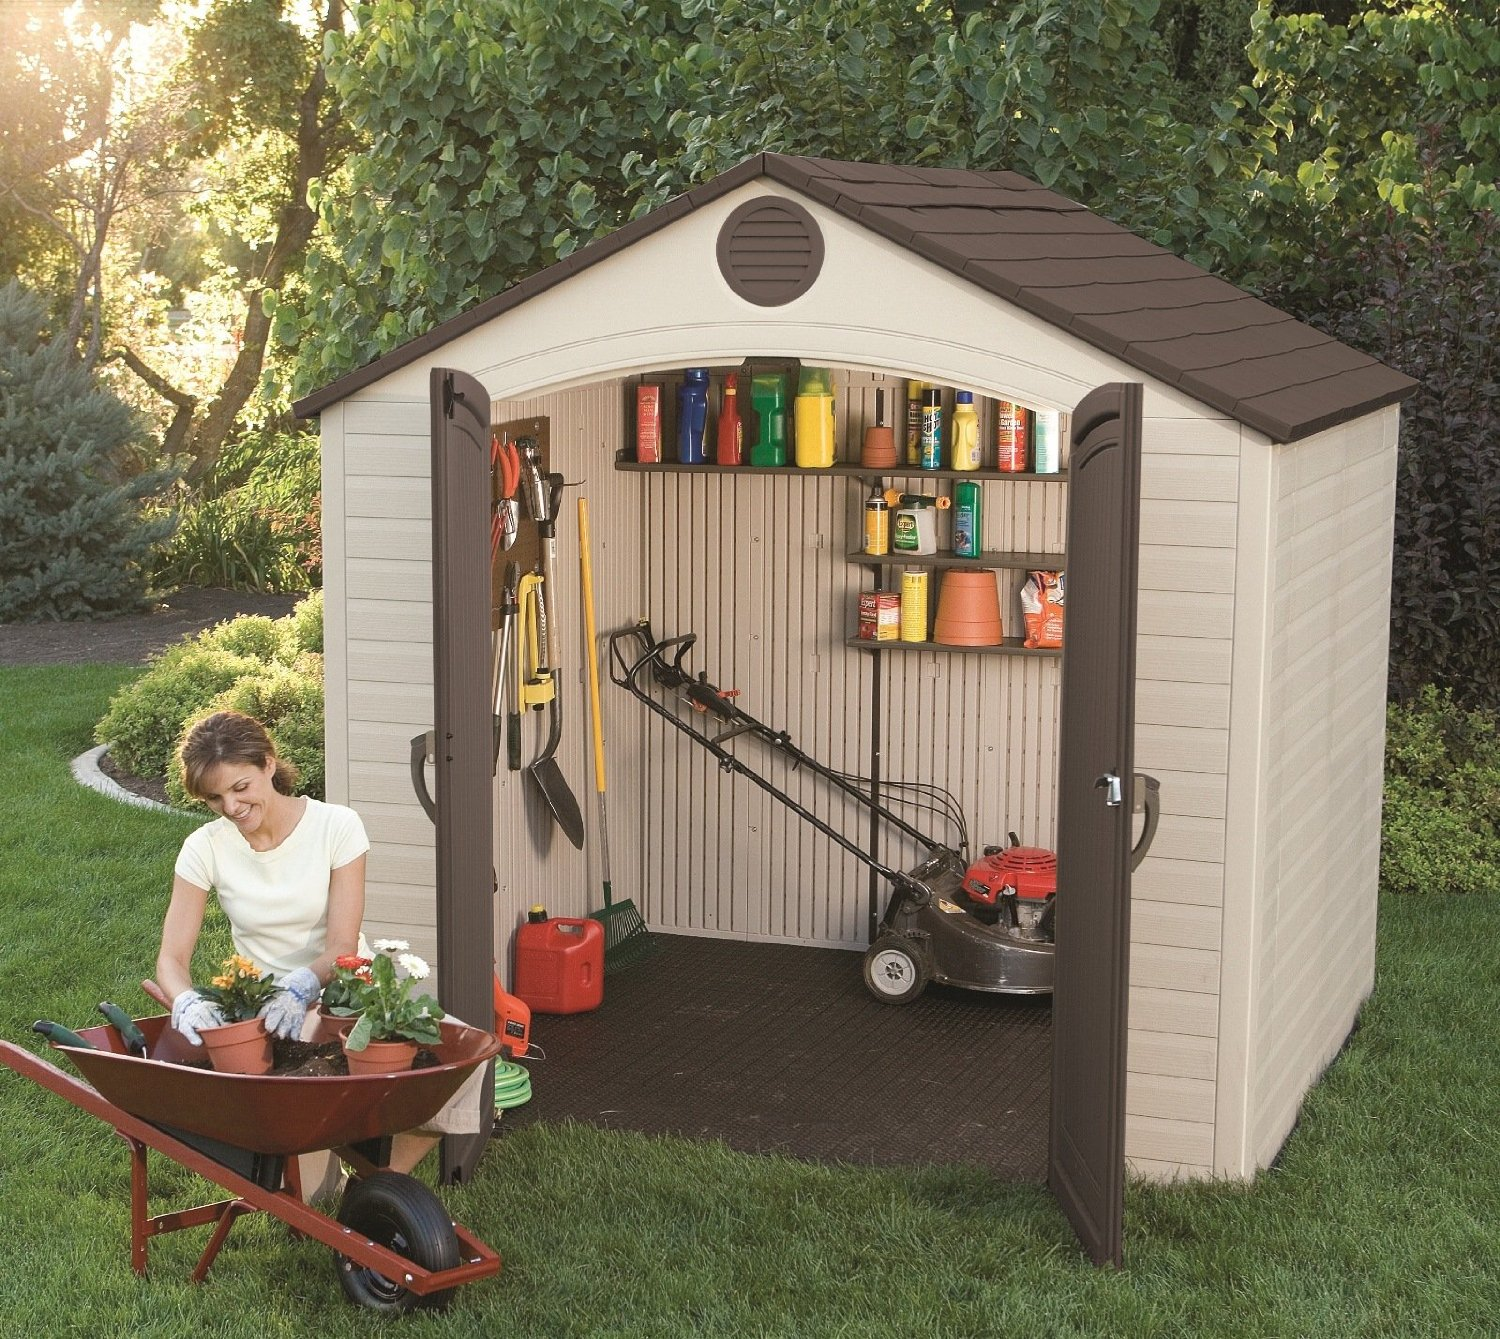 Reasons to consider having plastic sheds in your garden